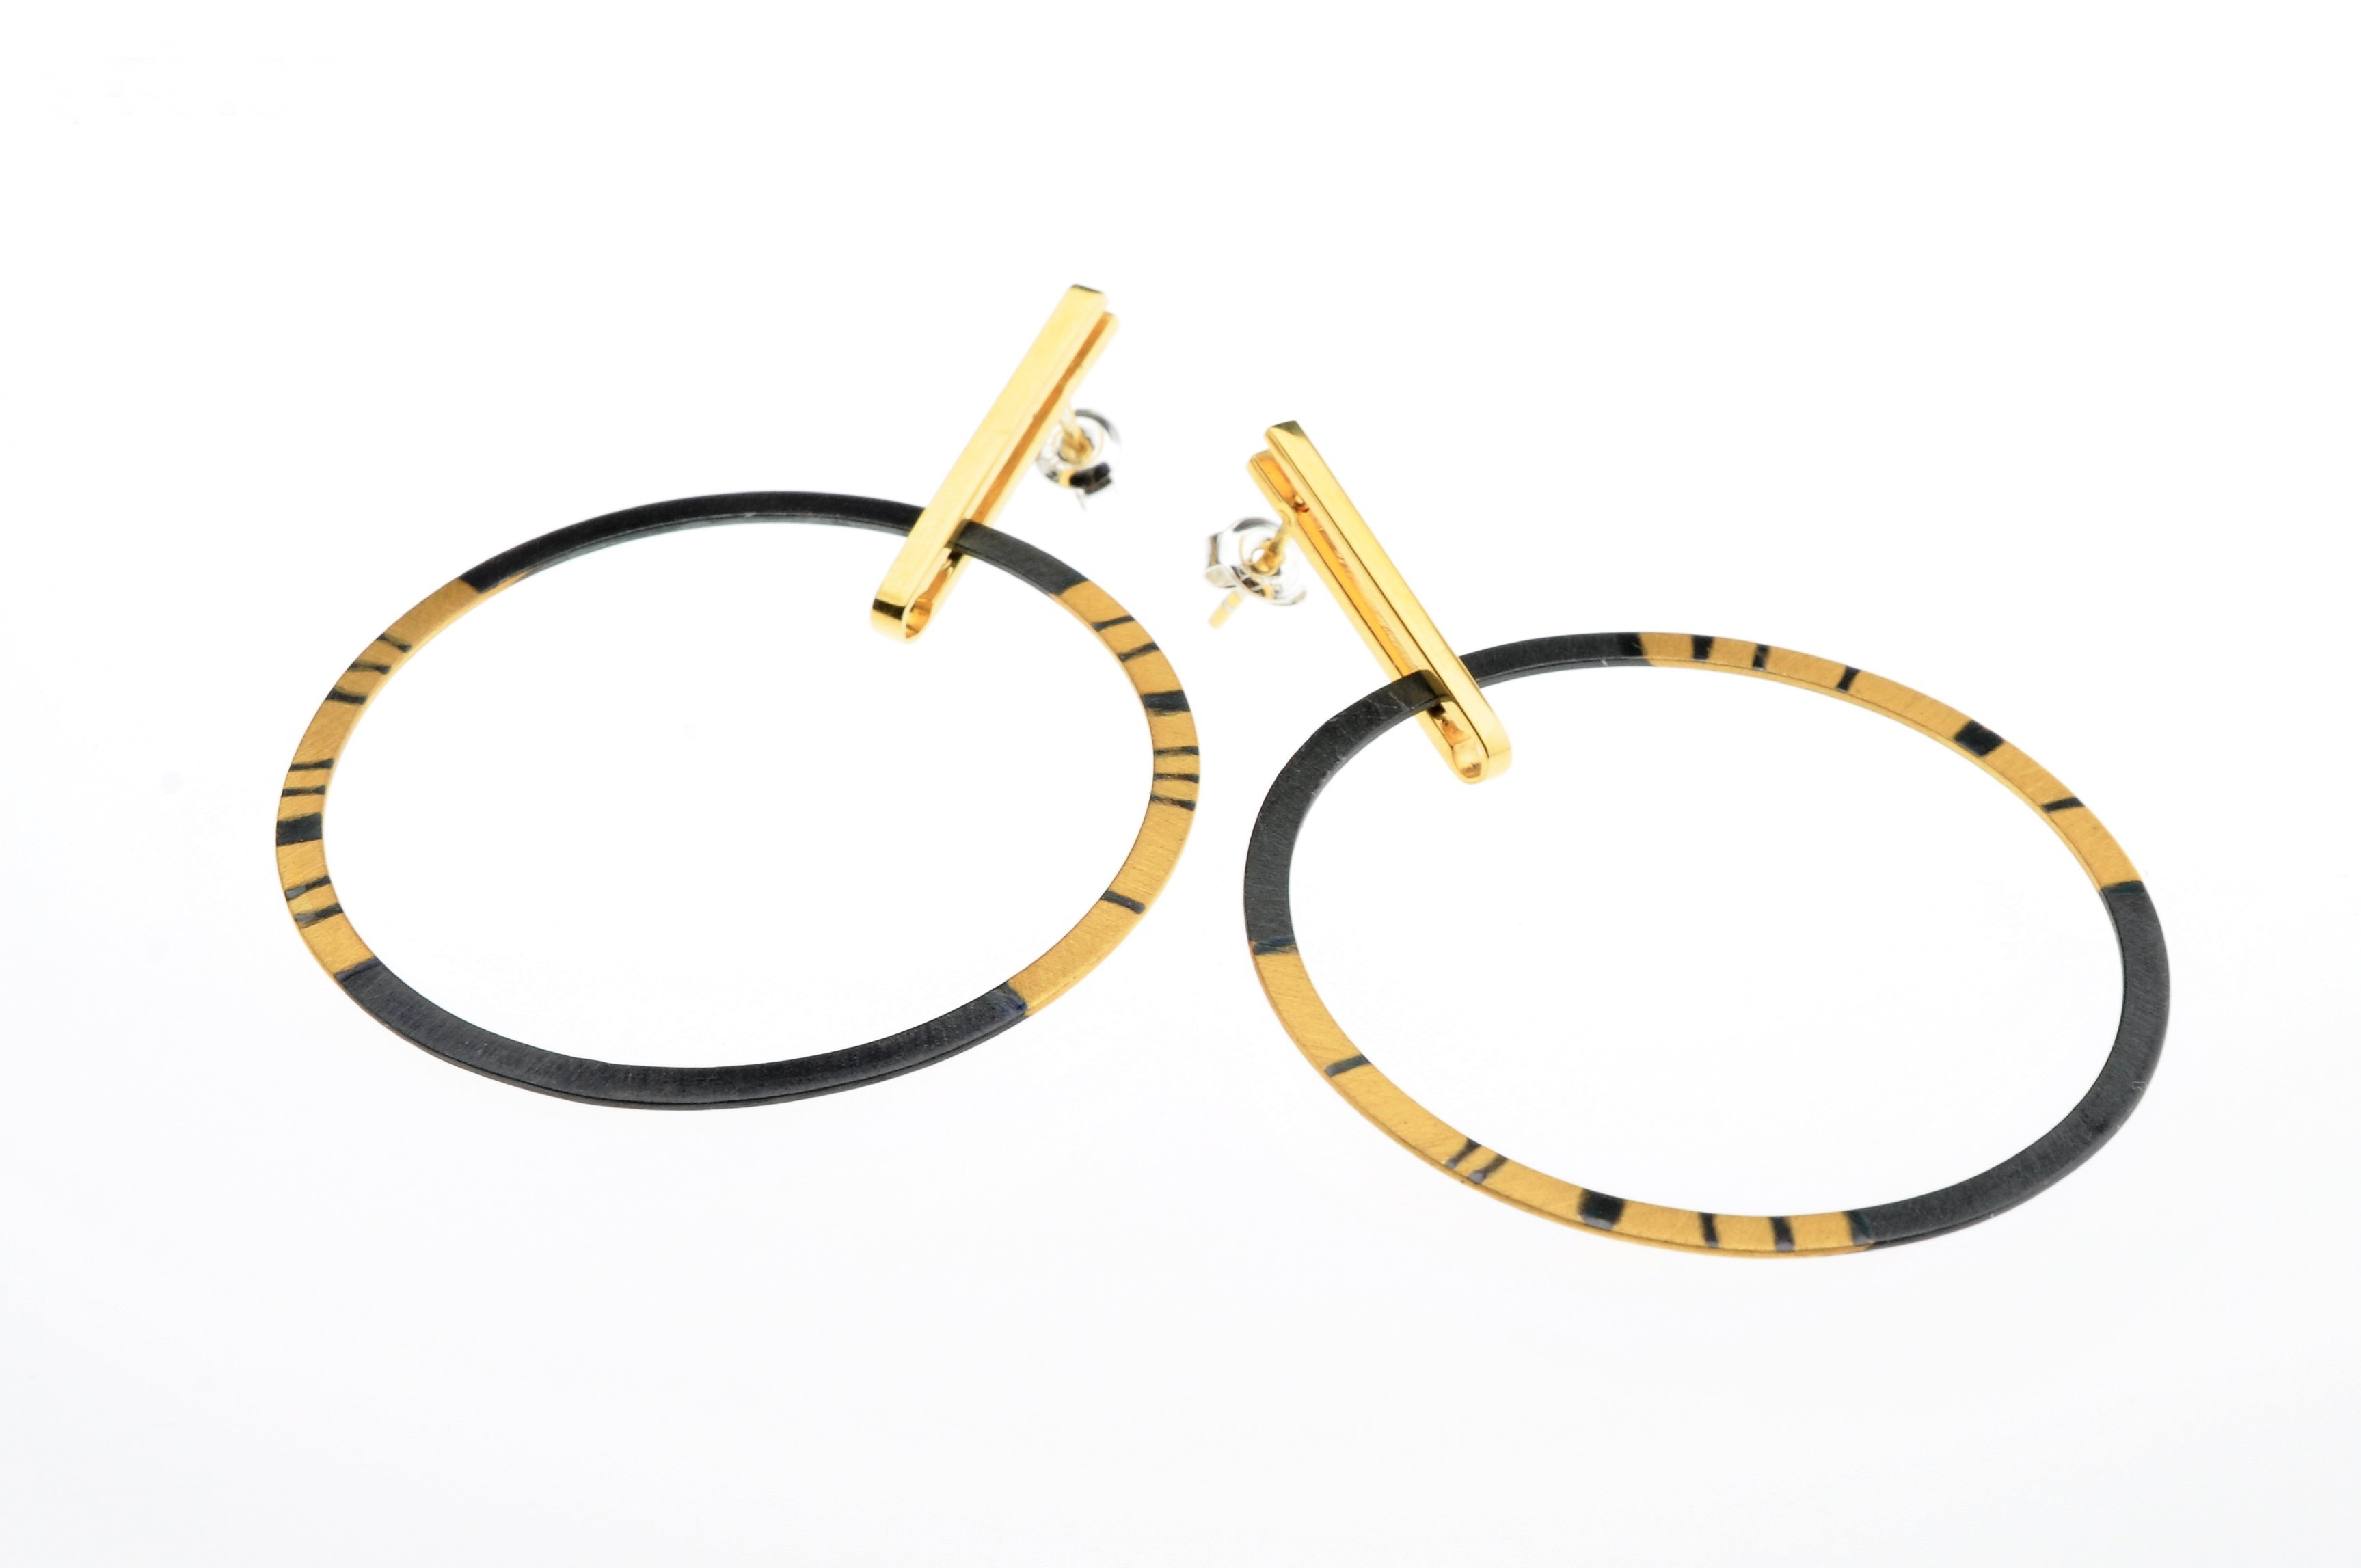 Oxidized Sterling Silver and Gold Vermeil  Circular Posted Earrings (BAS70)- Sold